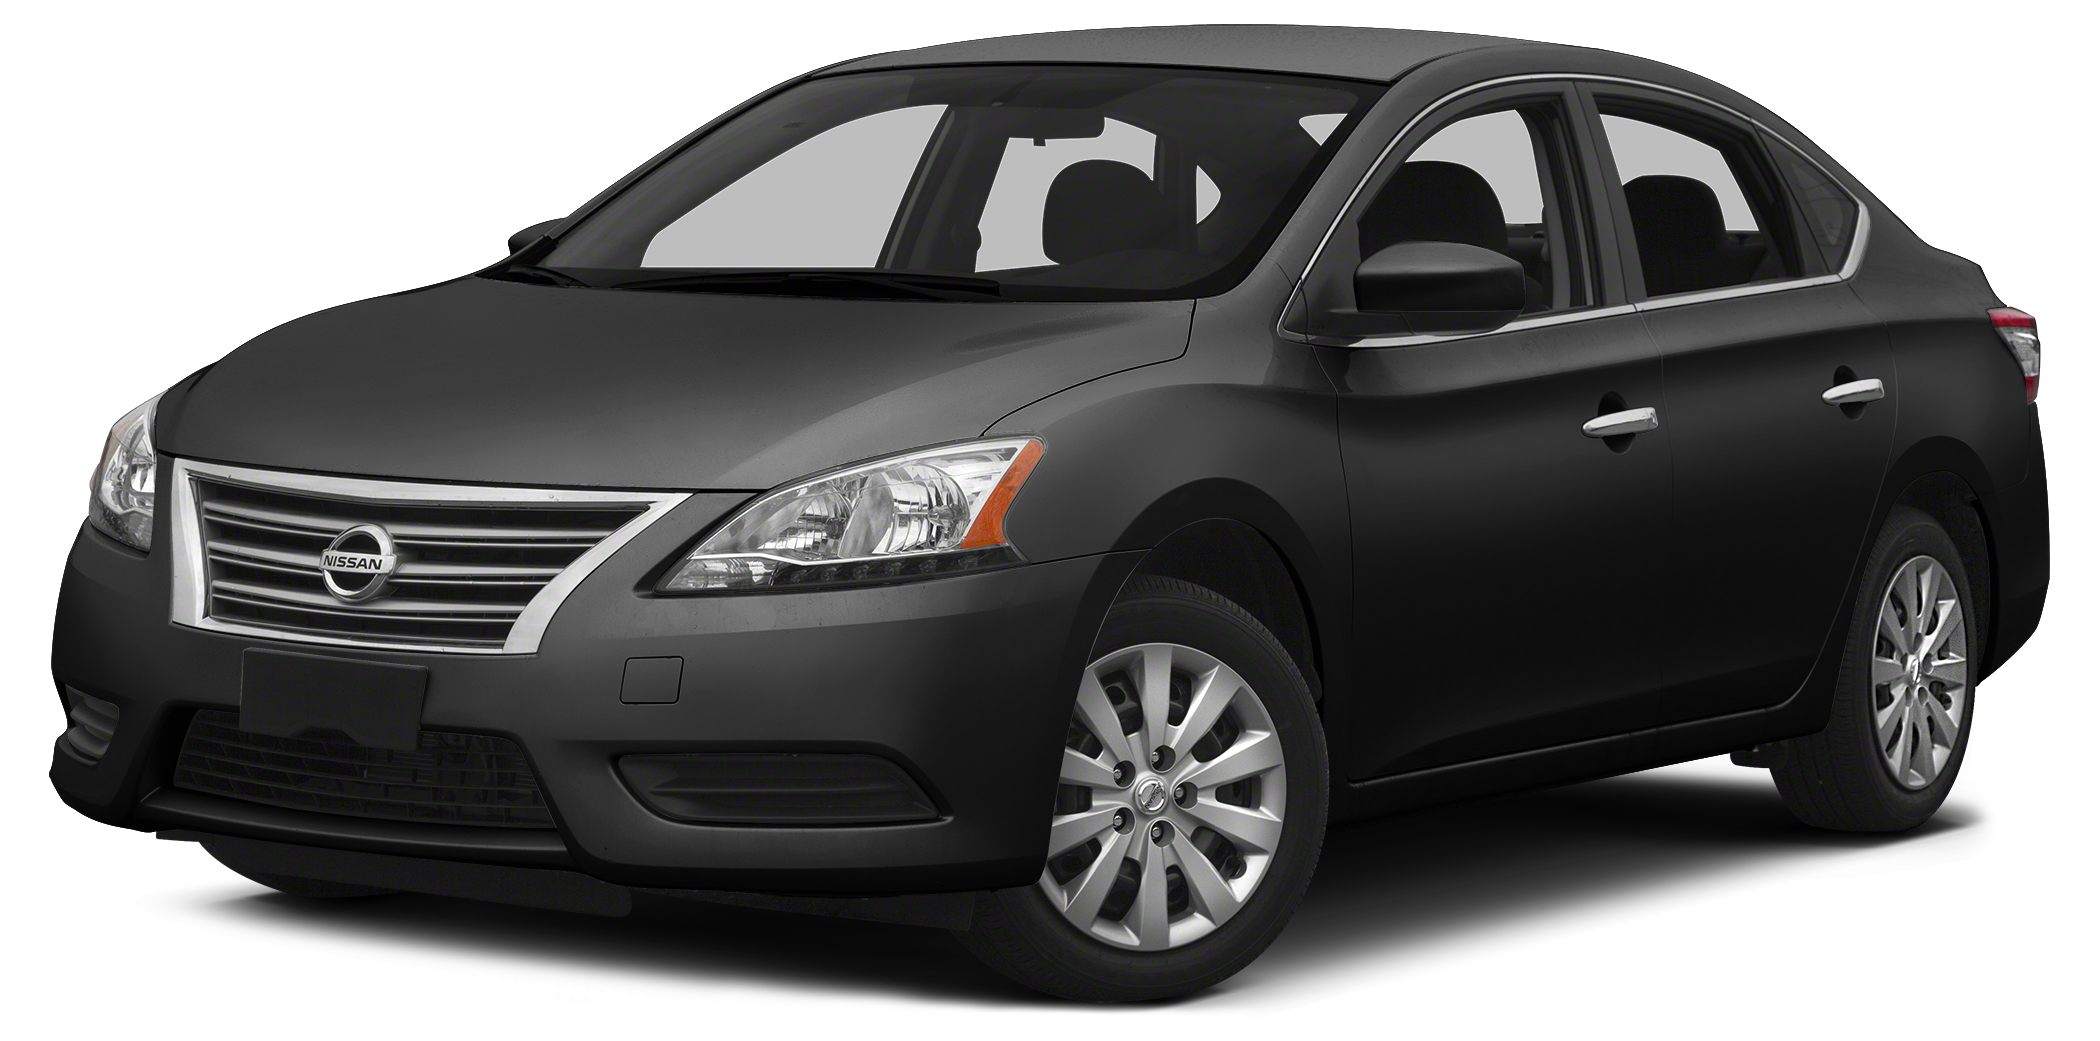 2013 Nissan Sentra SV Discerning drivers will appreciate the 2013 Nissan Sentra Worthy equipment